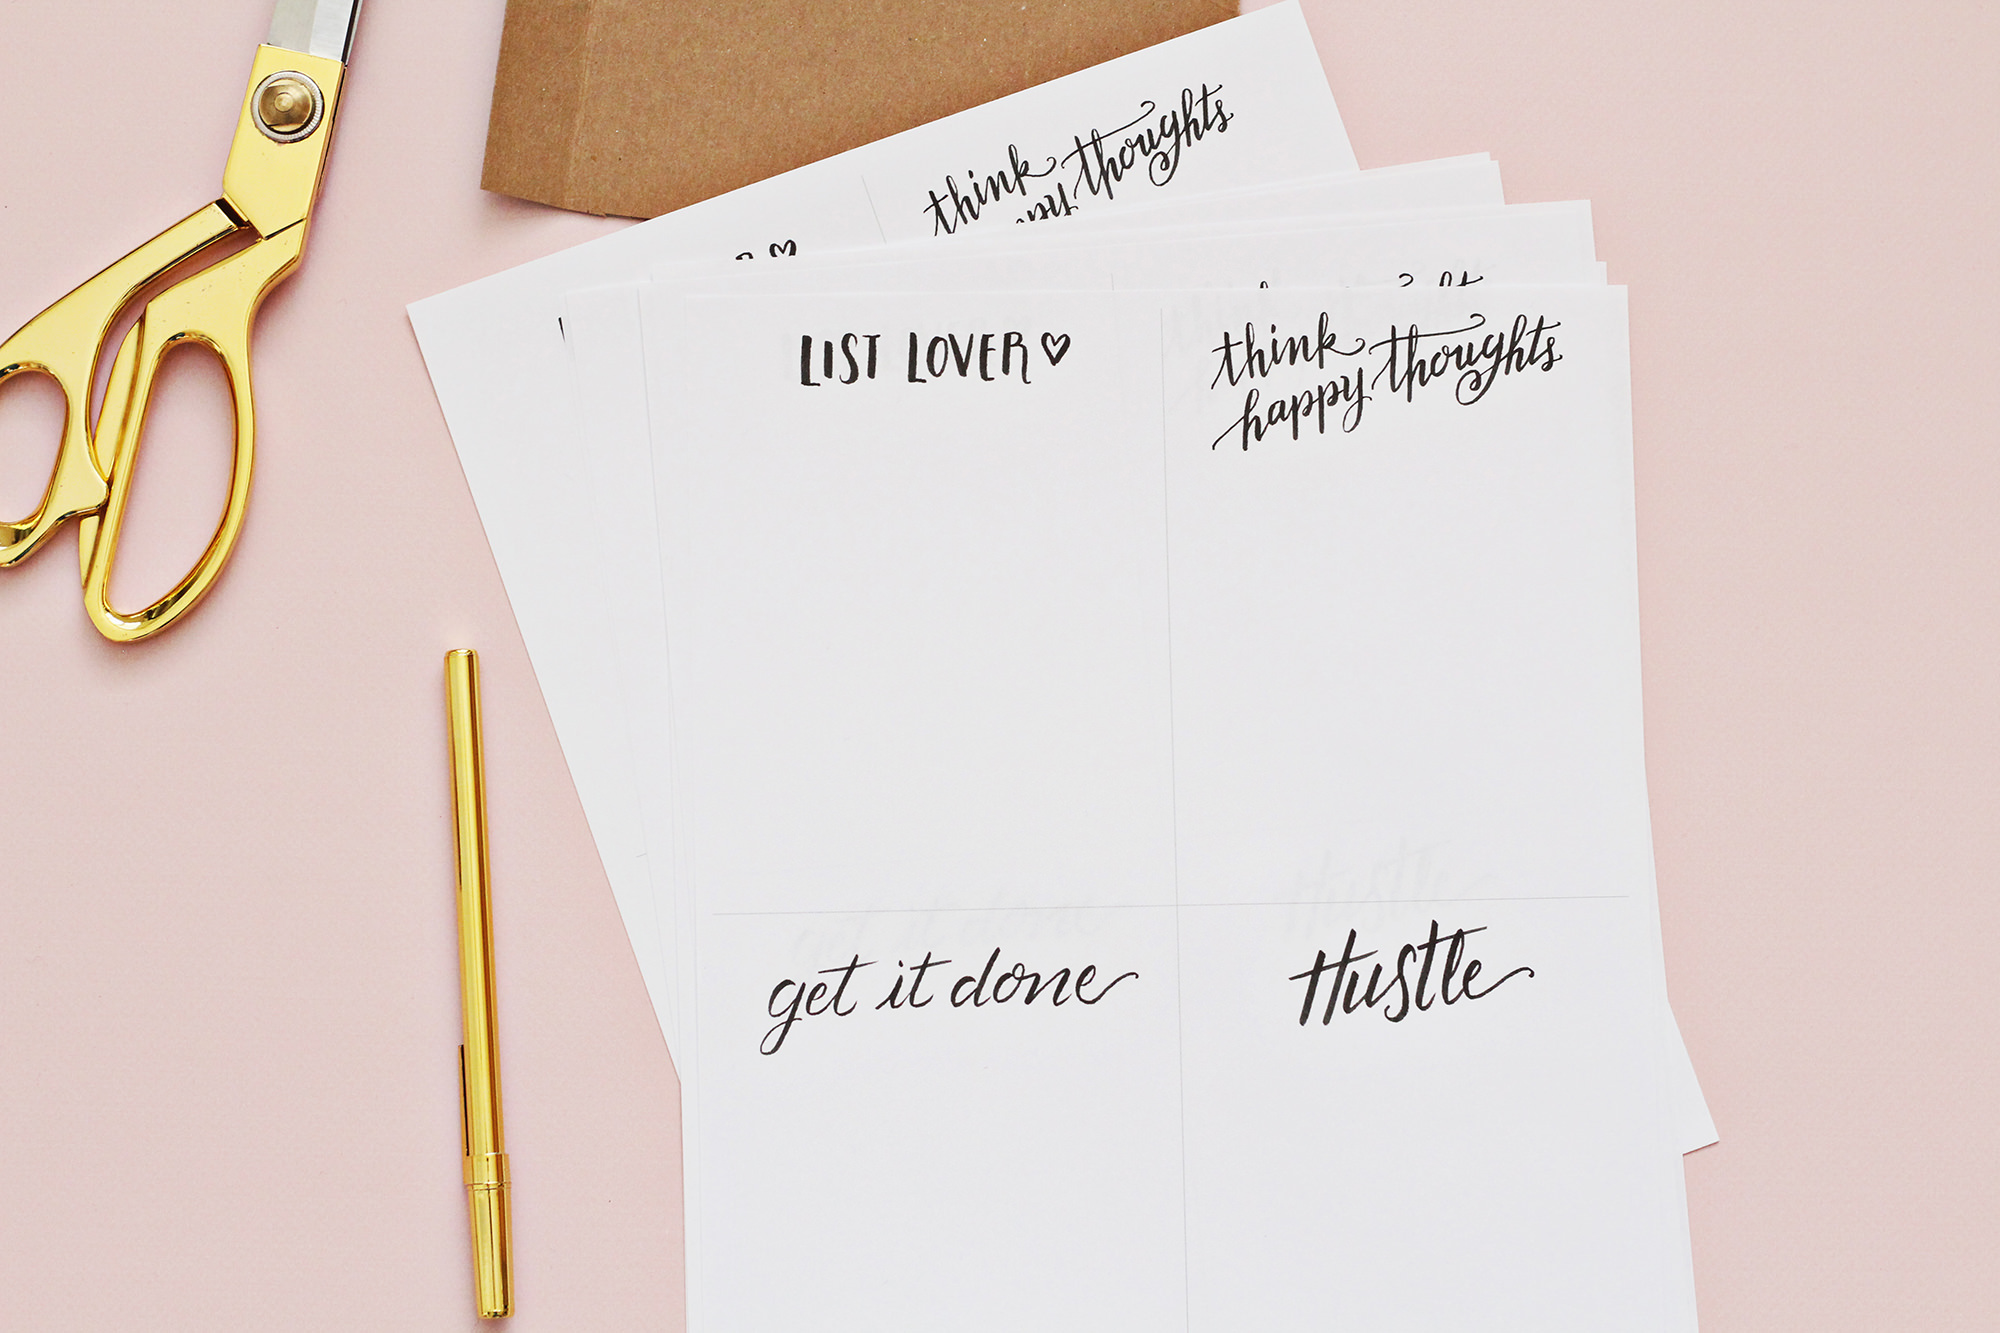 Use our free download to print pages and make a DIY notepad gift